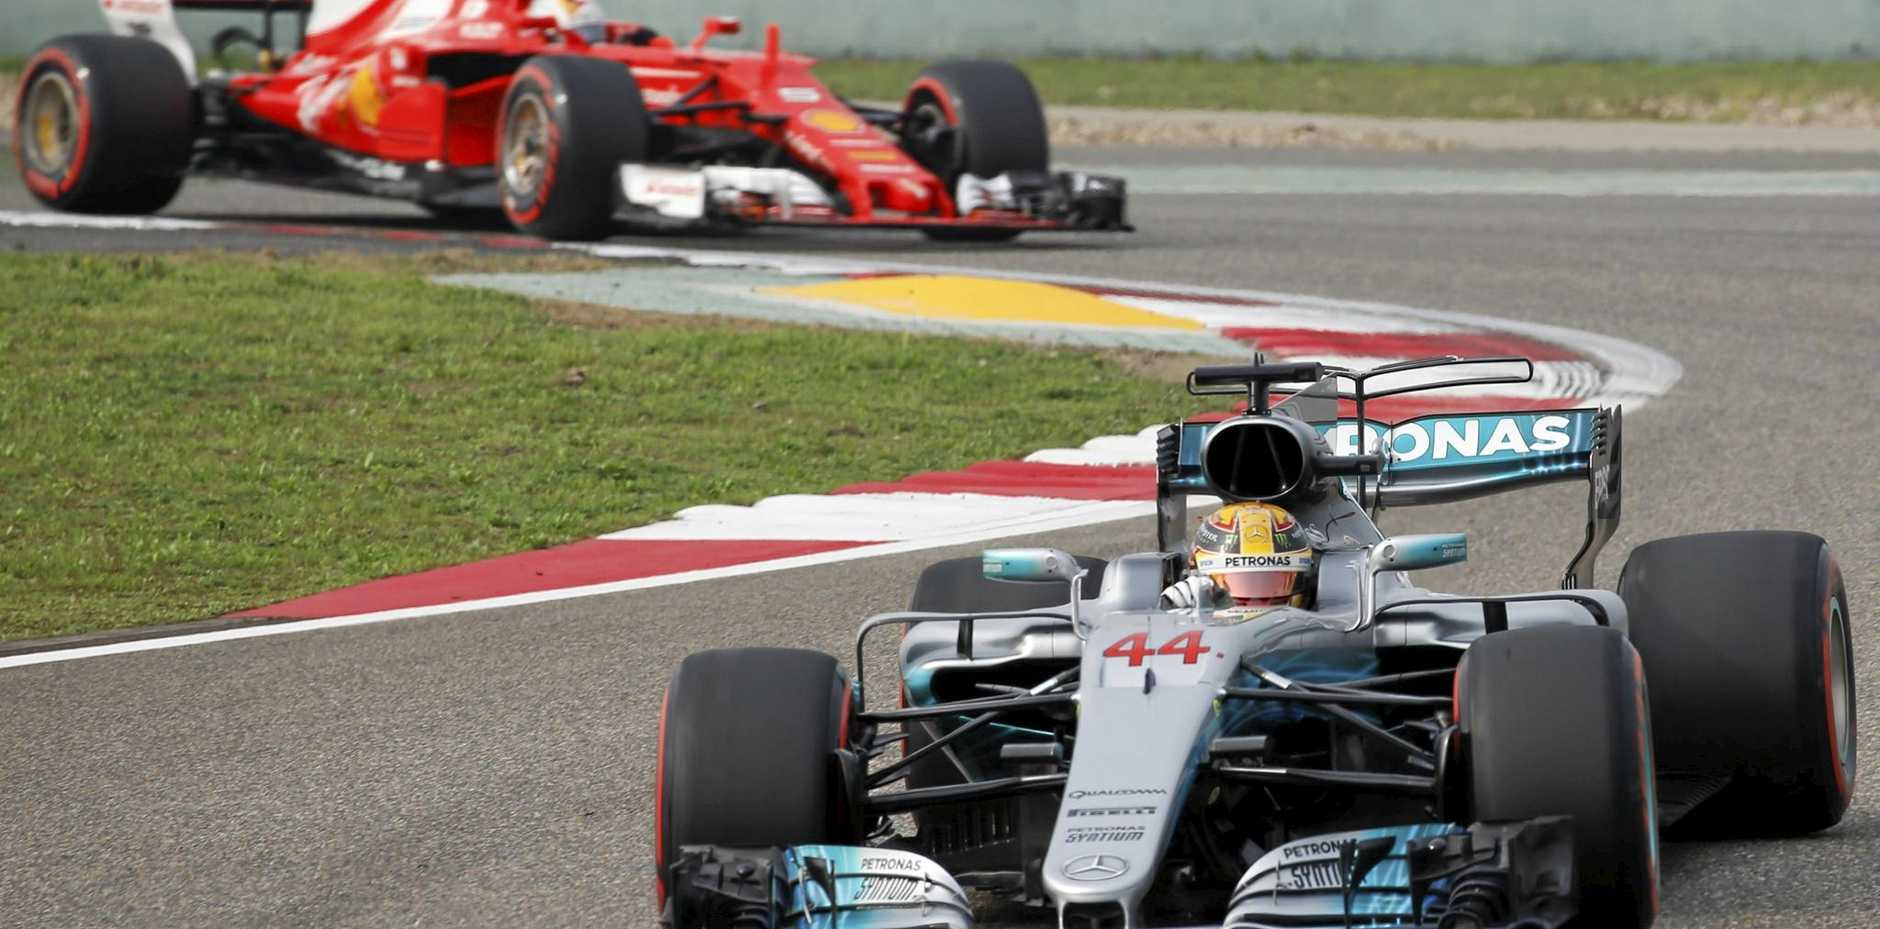 British Formula 1 driver Lewis Hamilton, of Mercedes, is followed by German driver Sebastian Vettel, of Ferrari, during qualifying for the Chinese Grand Prix in Shanghai.